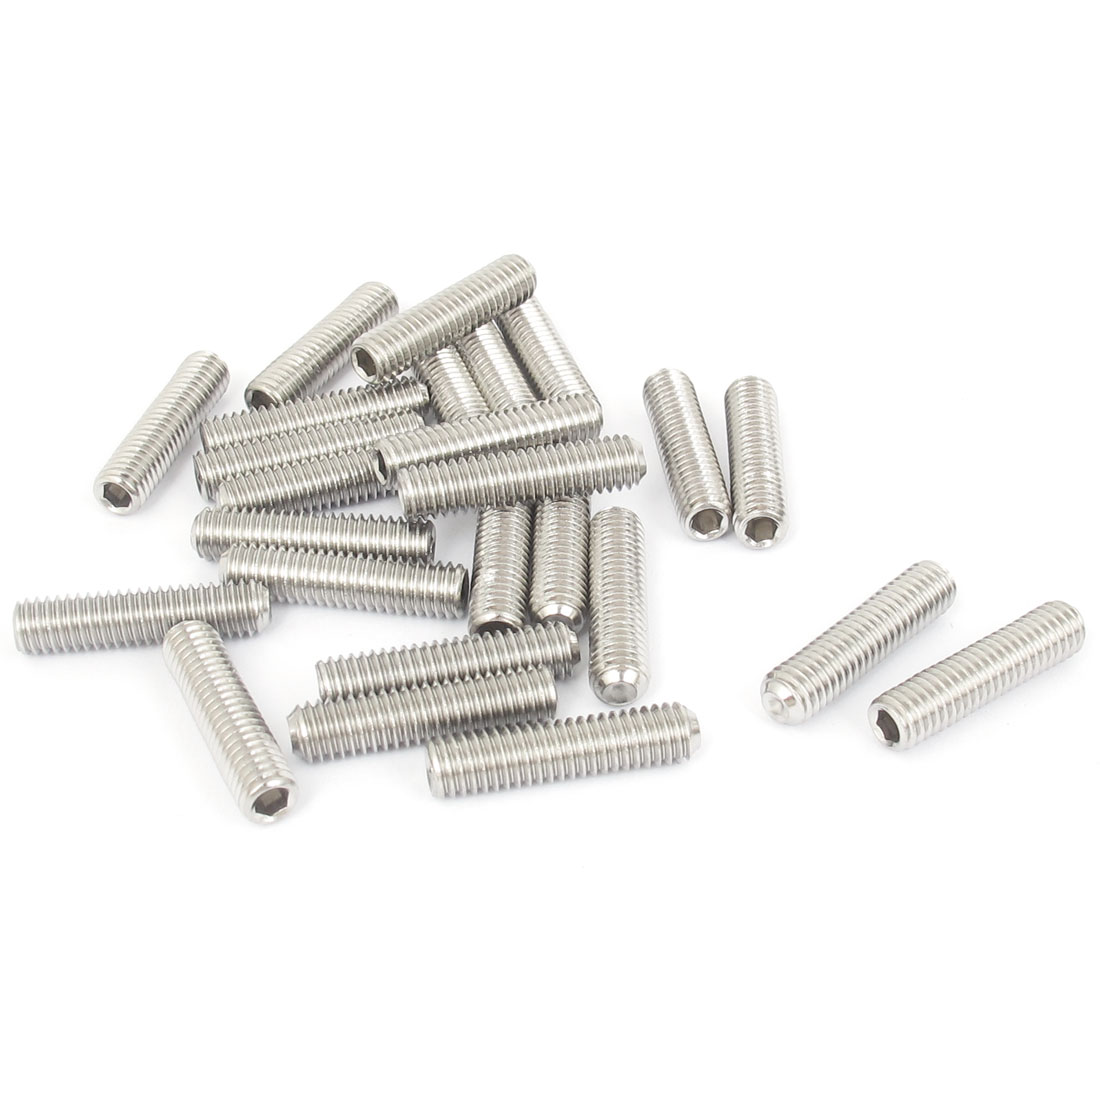 M6x25mm Stainless Steel Hex Socket Set Cap Point Grub Screws Silver Tone 25pcs